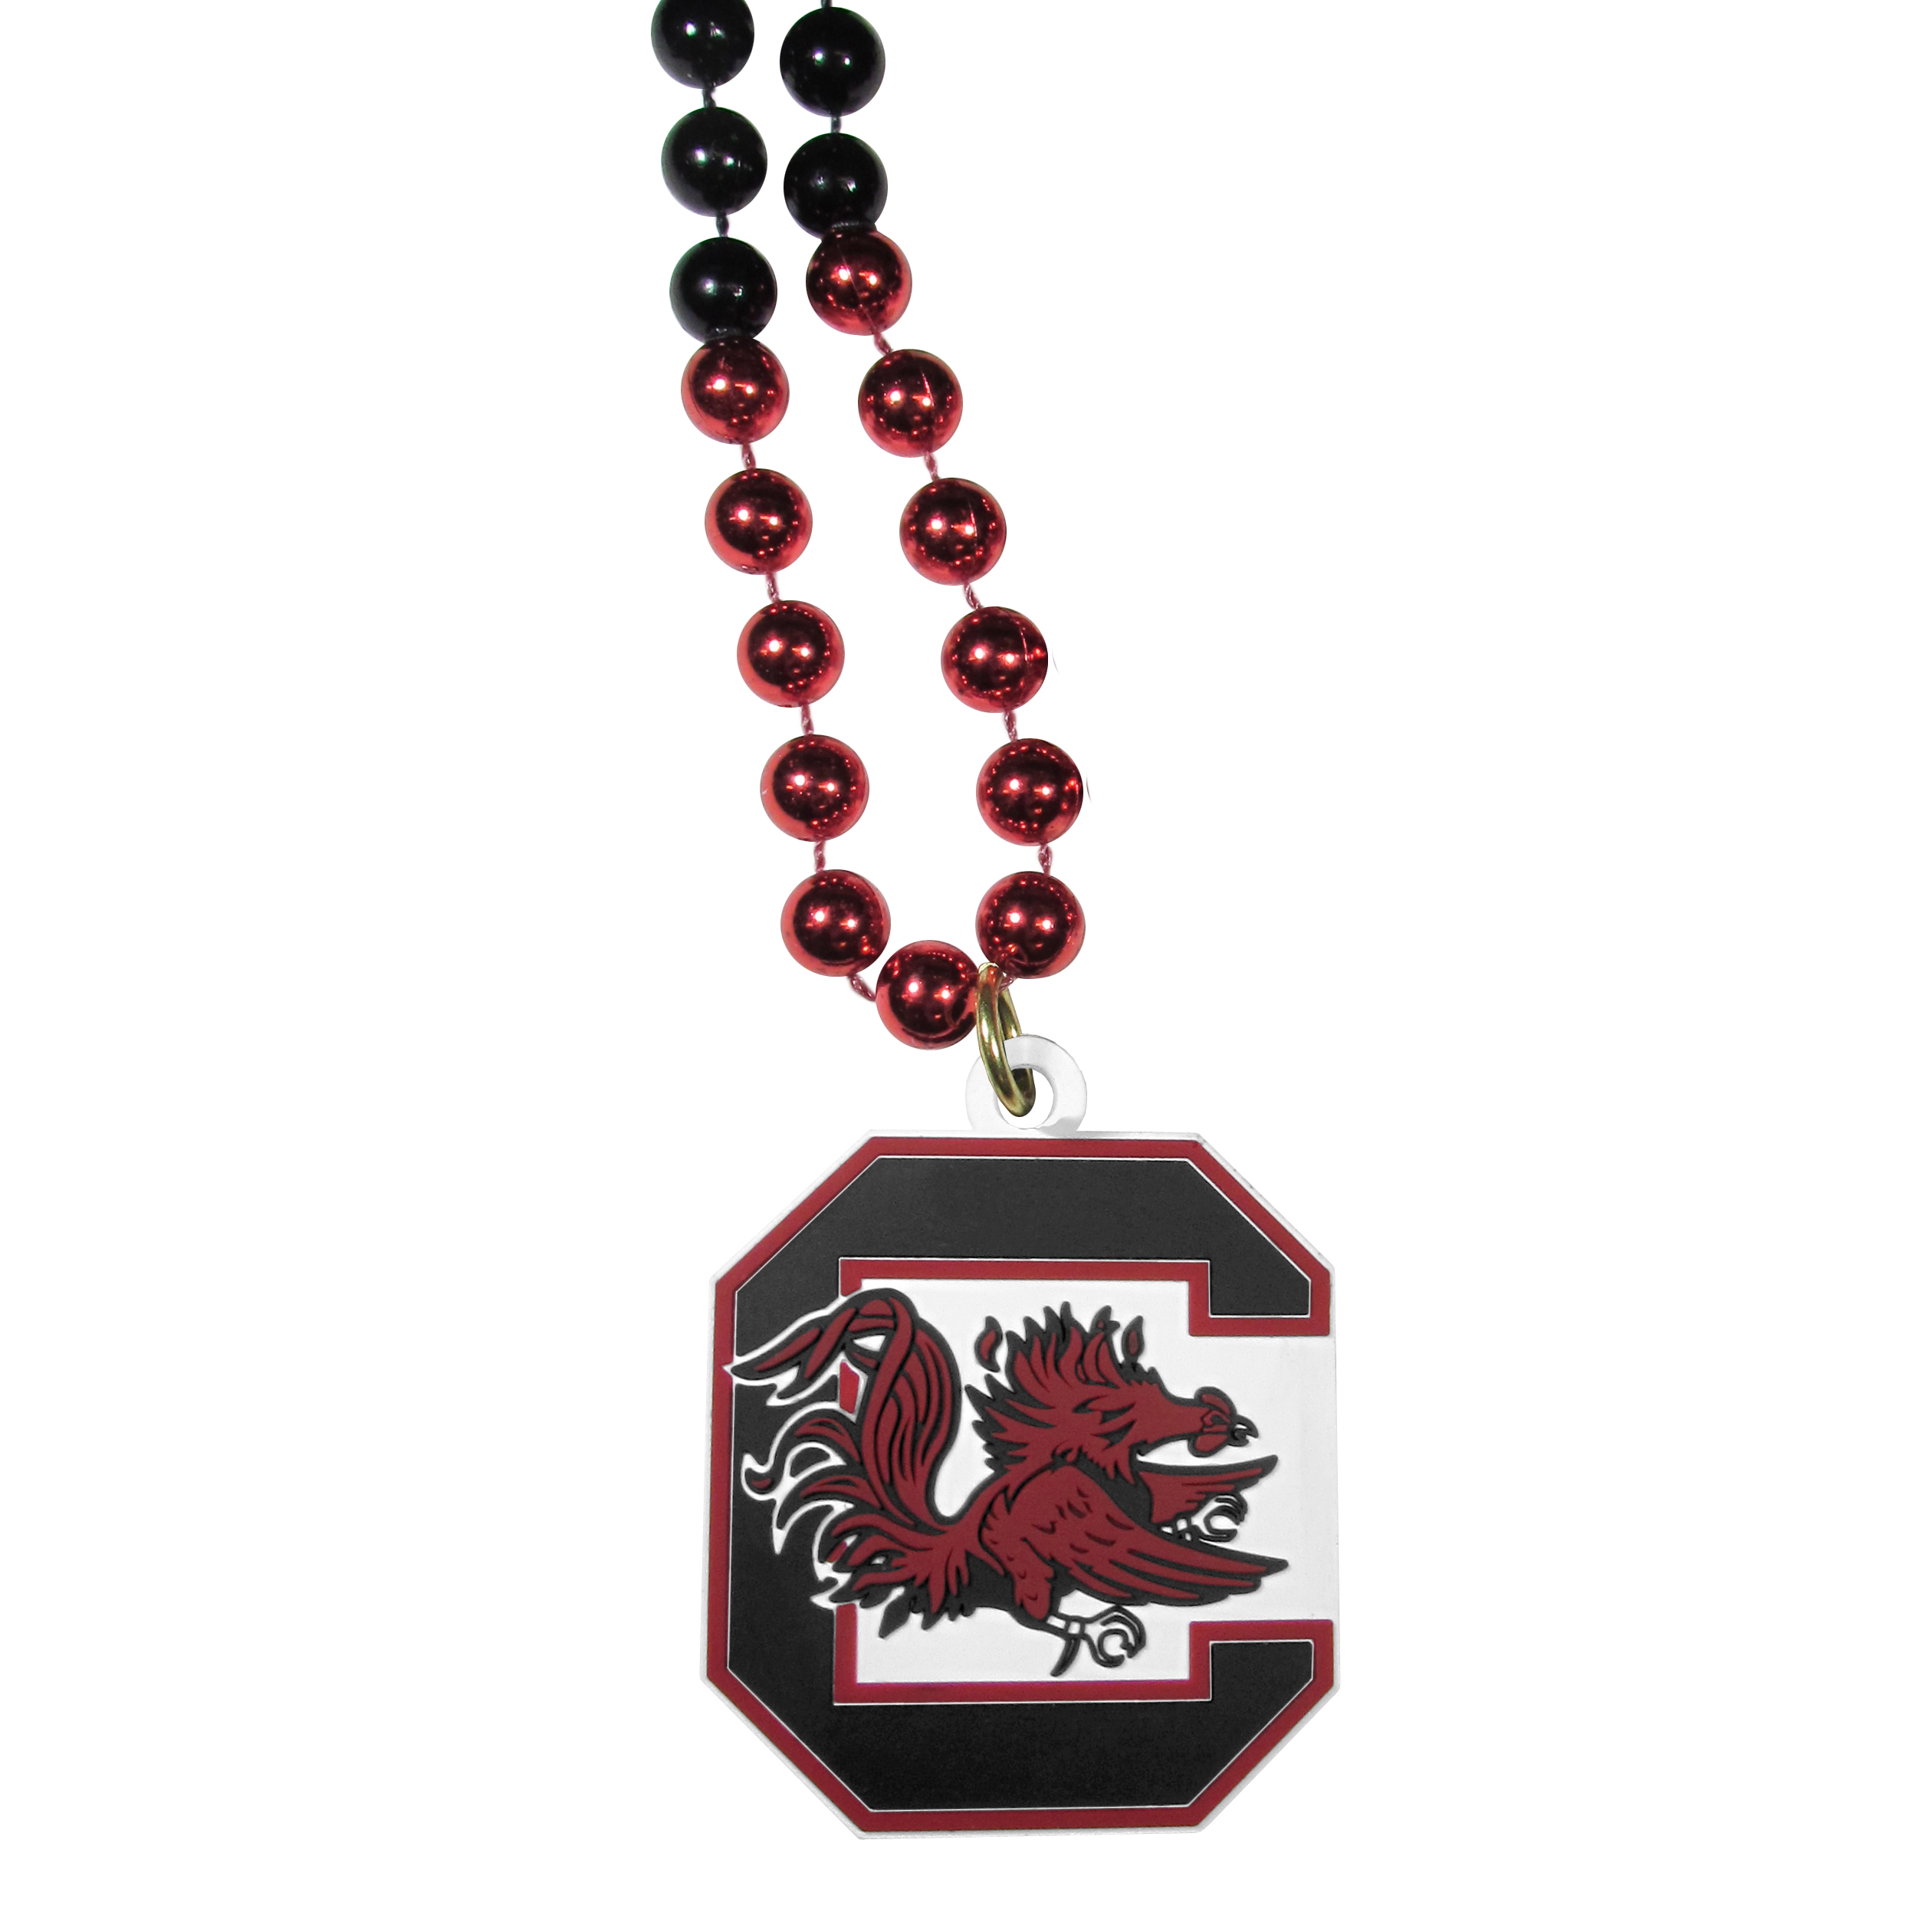 S. Carolina Gamecocks Mardi Gras Necklace - Get the party started with this Mardi Gras inspired bead necklace. The flashy beads have a shiny finish and come in bright team colors strung together on a 36 inch string so you can make a big statement on game day! The beads come with an extra large flexible team logo that is a full 3 inches at its widest point. This trendy and bold necklace screams out your S. Carolina Gamecocks pride and is a must have at game time!